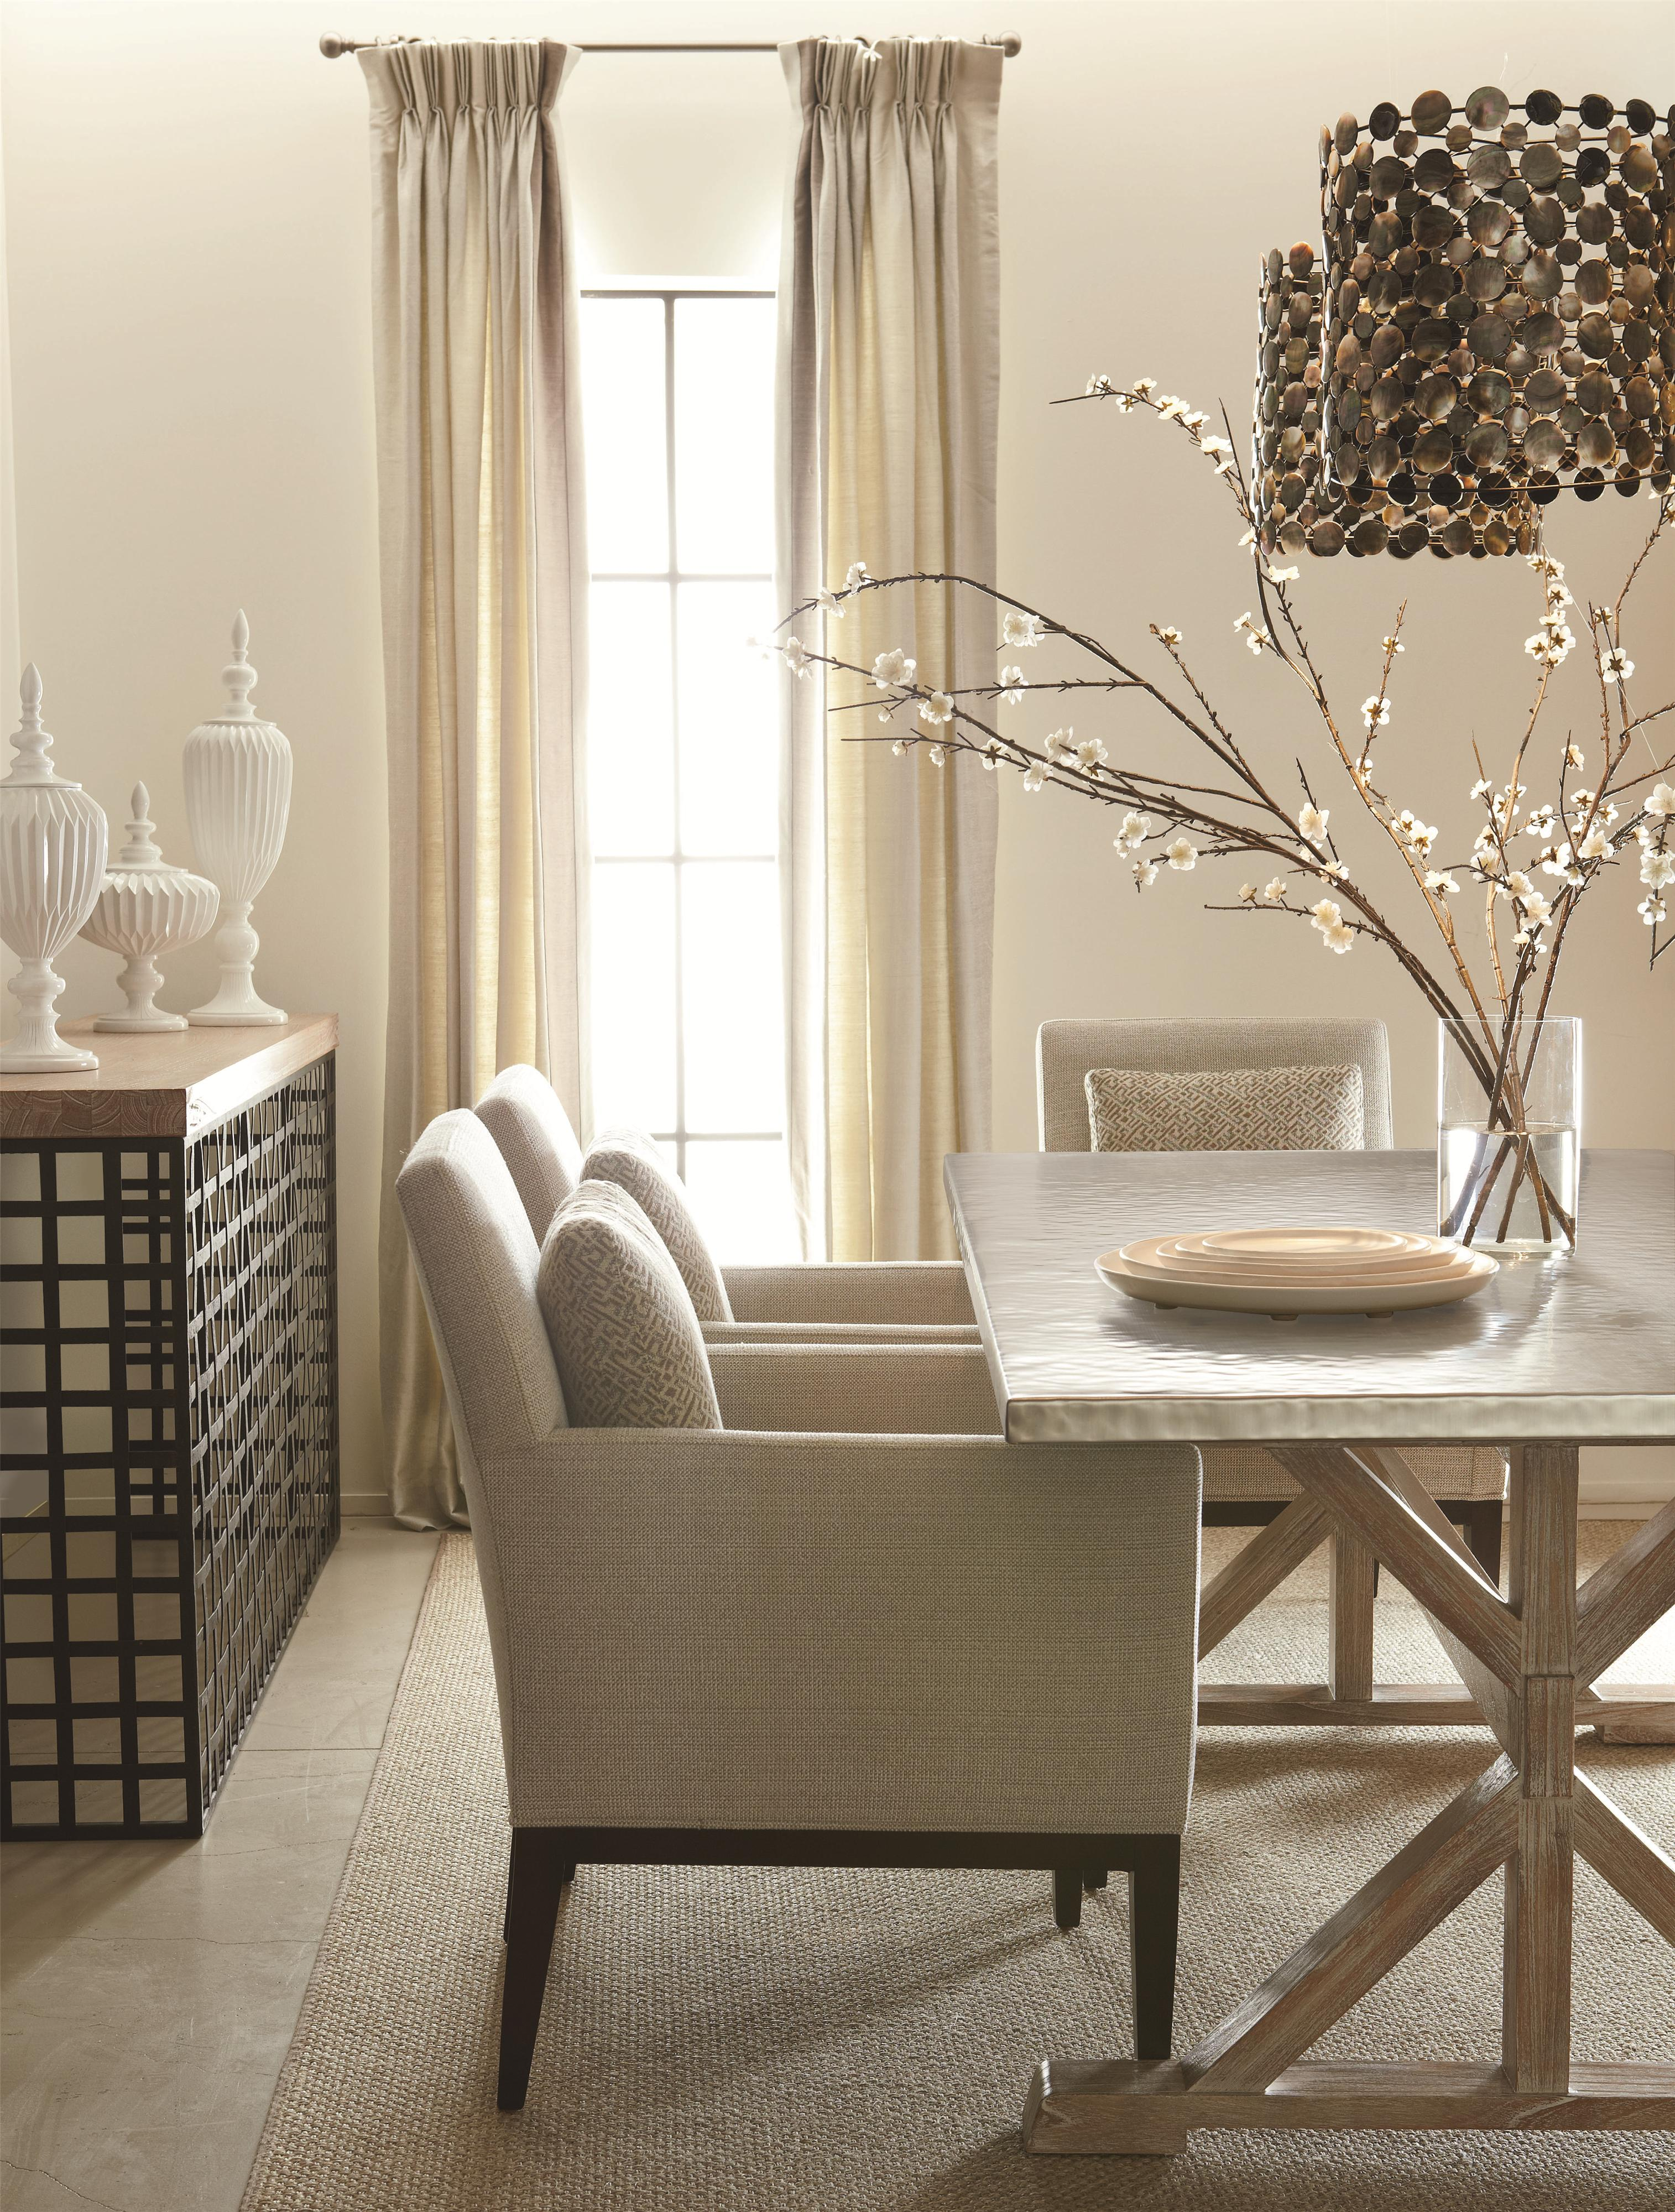 Bernhardt Quentin Modern Dining Table With Antique Look